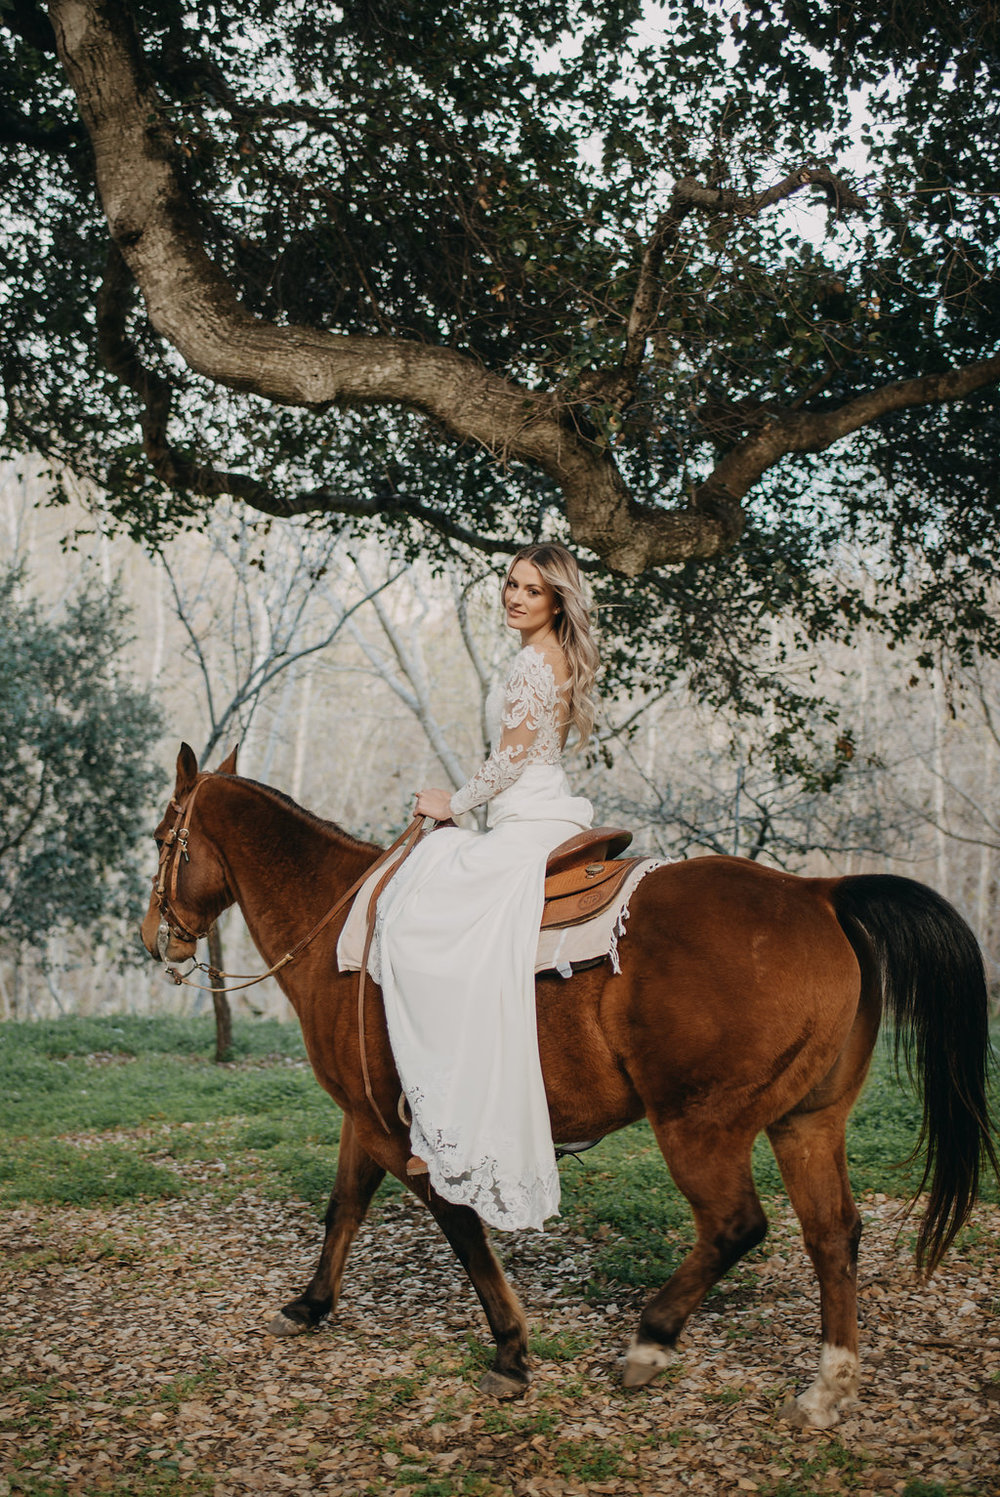 bridal photo idea boho wedding photo inspiration horseback riding